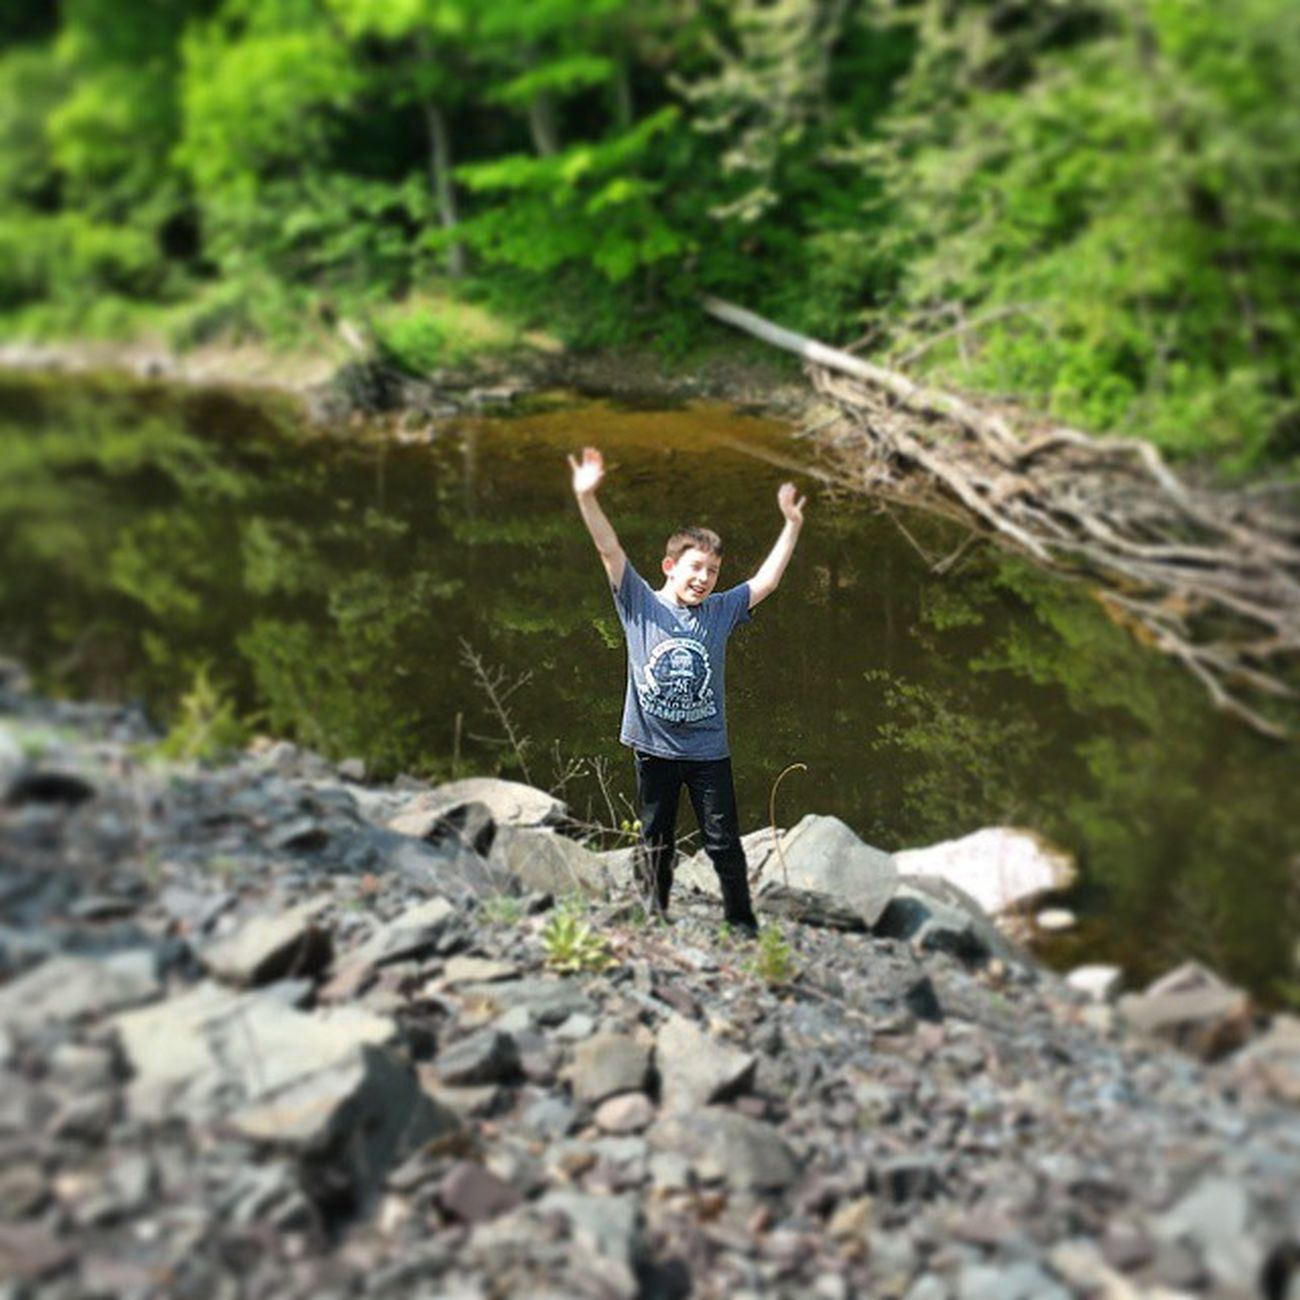 Great 2 mile hike with my boy today!!!! Hikingpennsylvania Hiking Mysoniscuterthanyours Pennsylvania Lakenockamixon Lake Nockamixon Creekswimming Outdoors LoveNature Mysonisbetterthanyours Buckscounty Buckscountypa